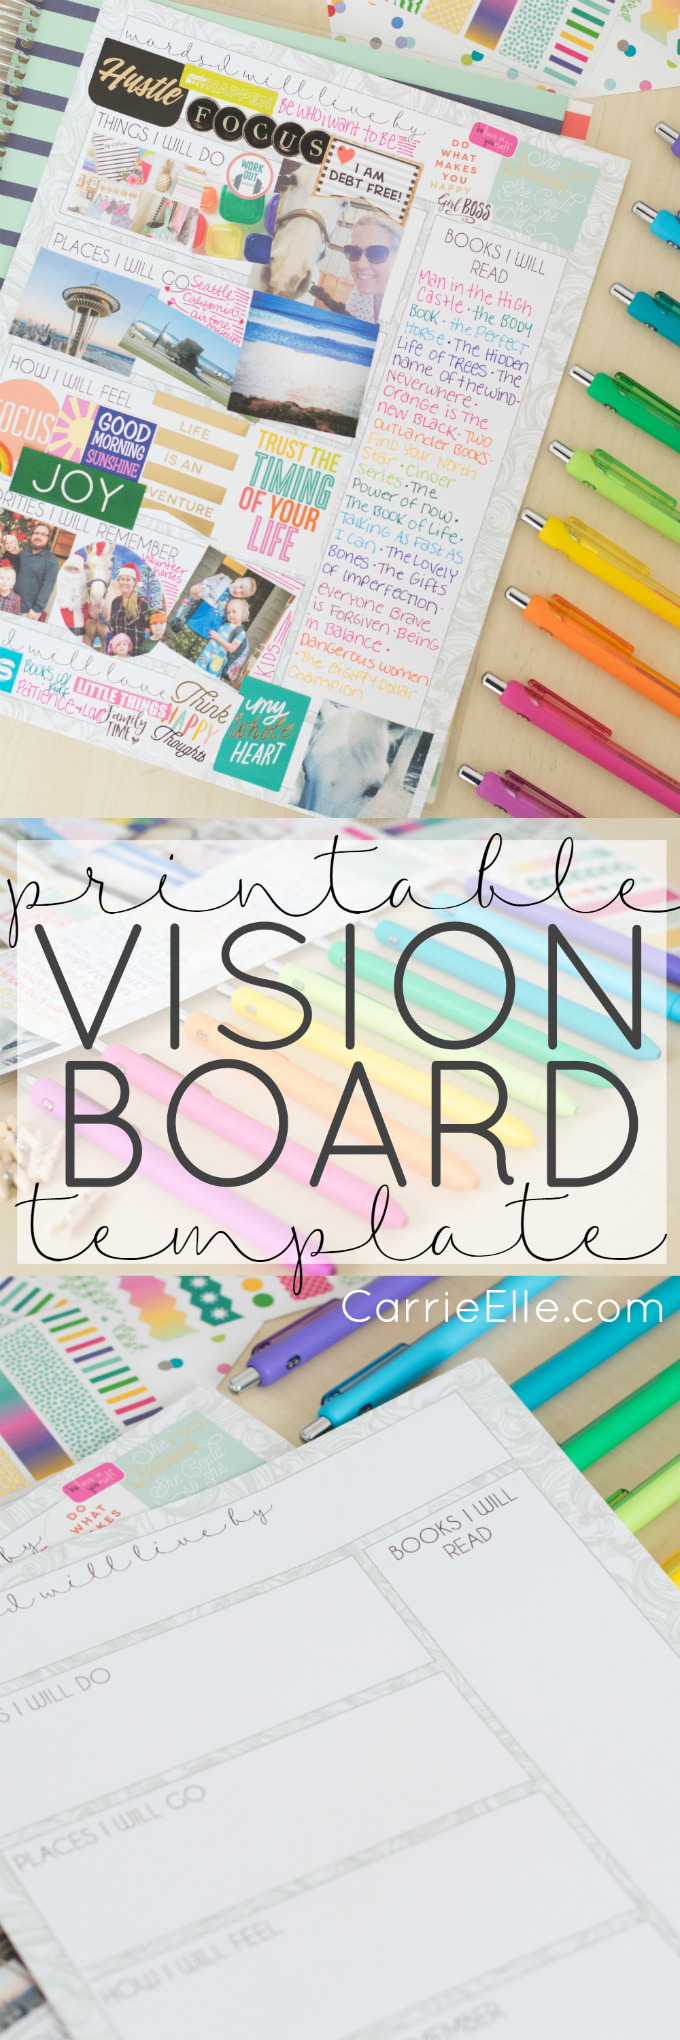 Printable vision board template carrie elle for Vision board templates free